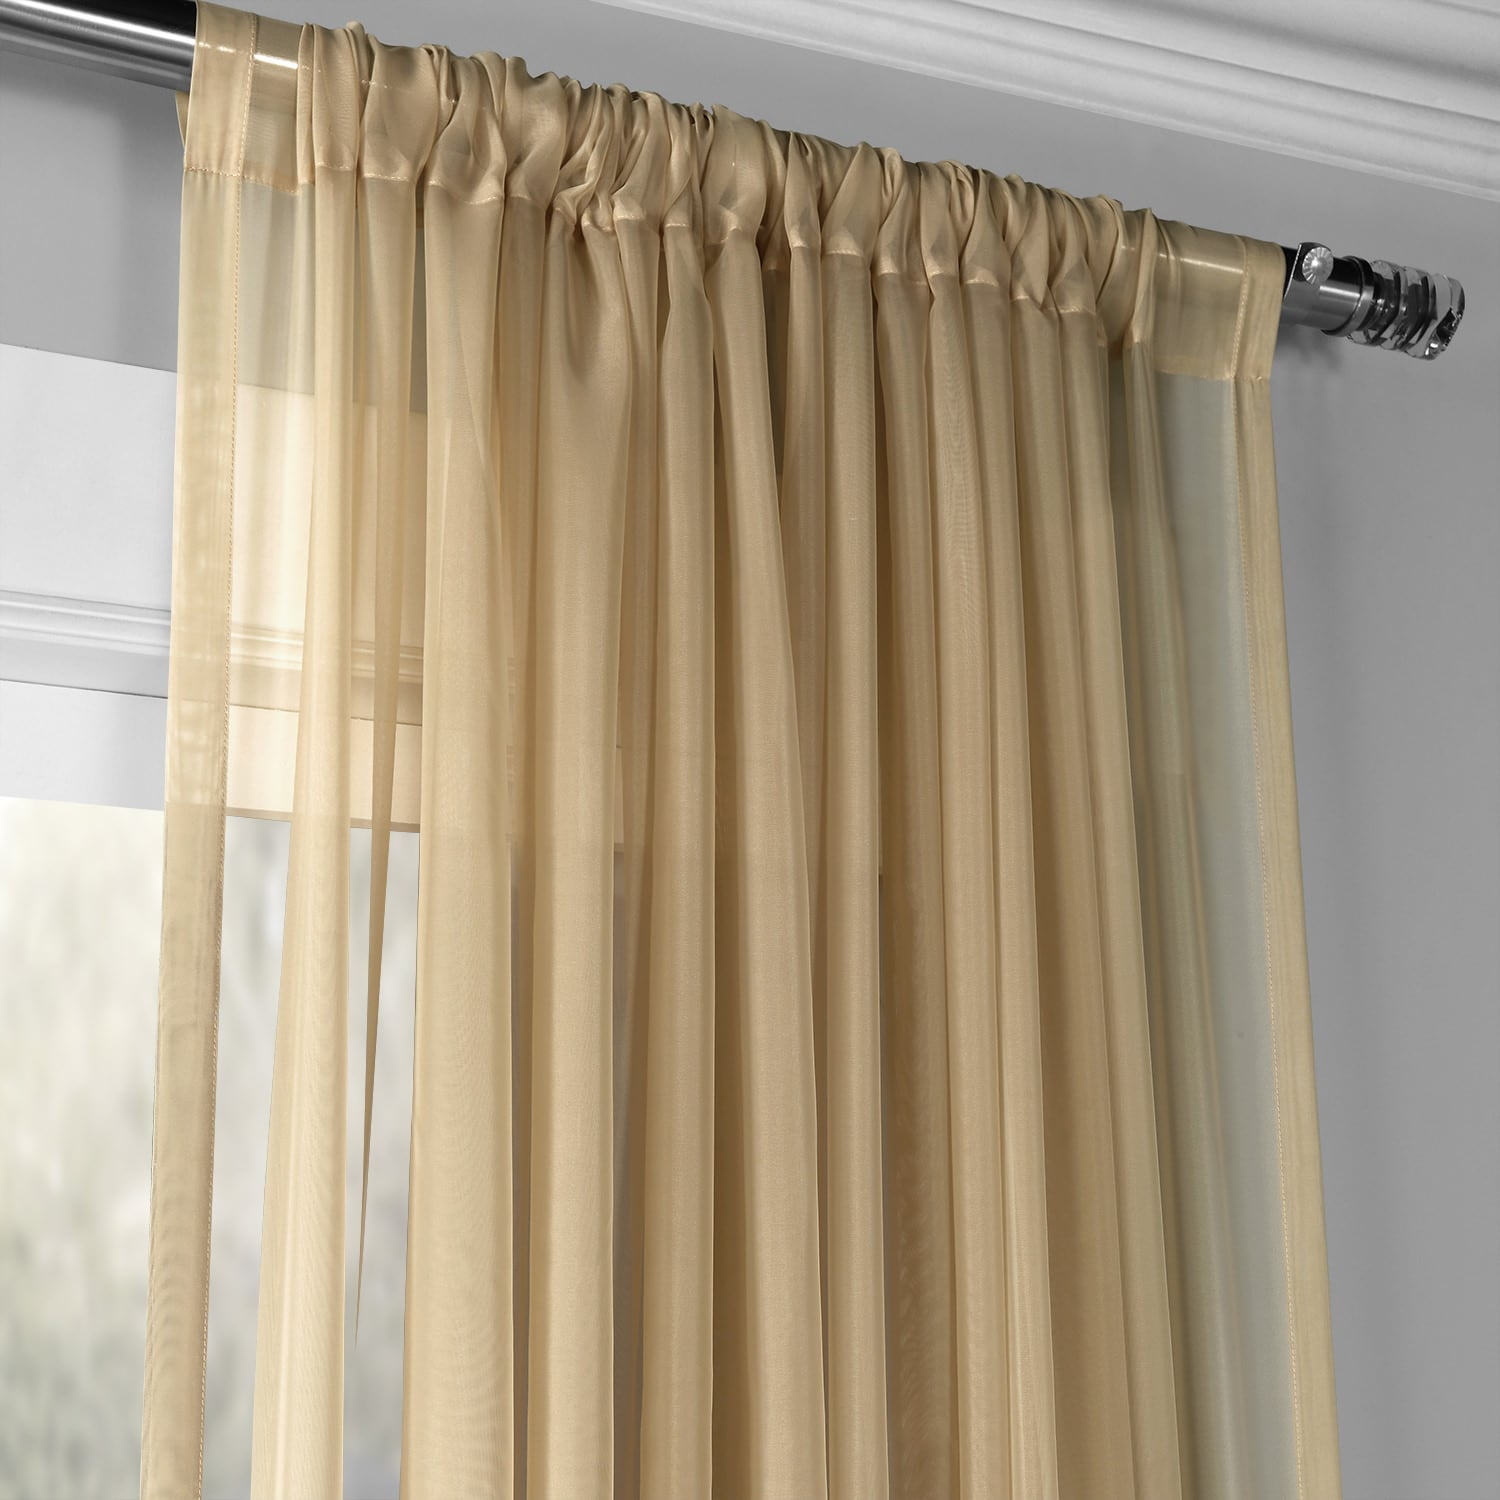 Extra Wide Solid Soft Tan Voile Poly Sheer Curtain